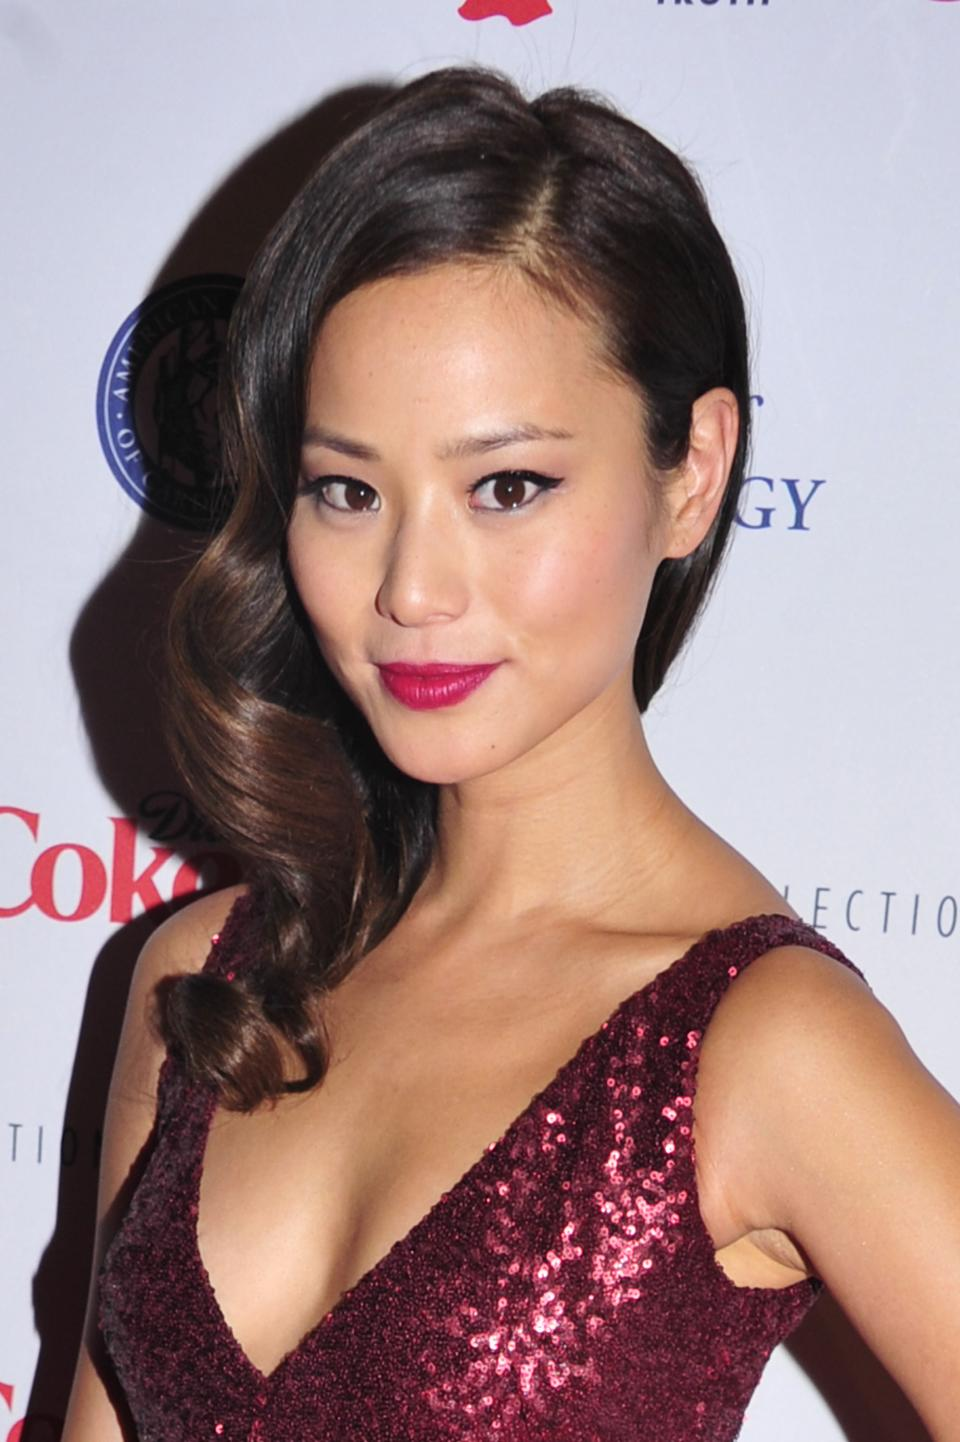 Jamie Chung attends the Red Dress Collection 2013 Fashion Show, on Wednesday, Feb. 6, 2013 in New York. (Photo by Charles Sykes/Invision/AP)